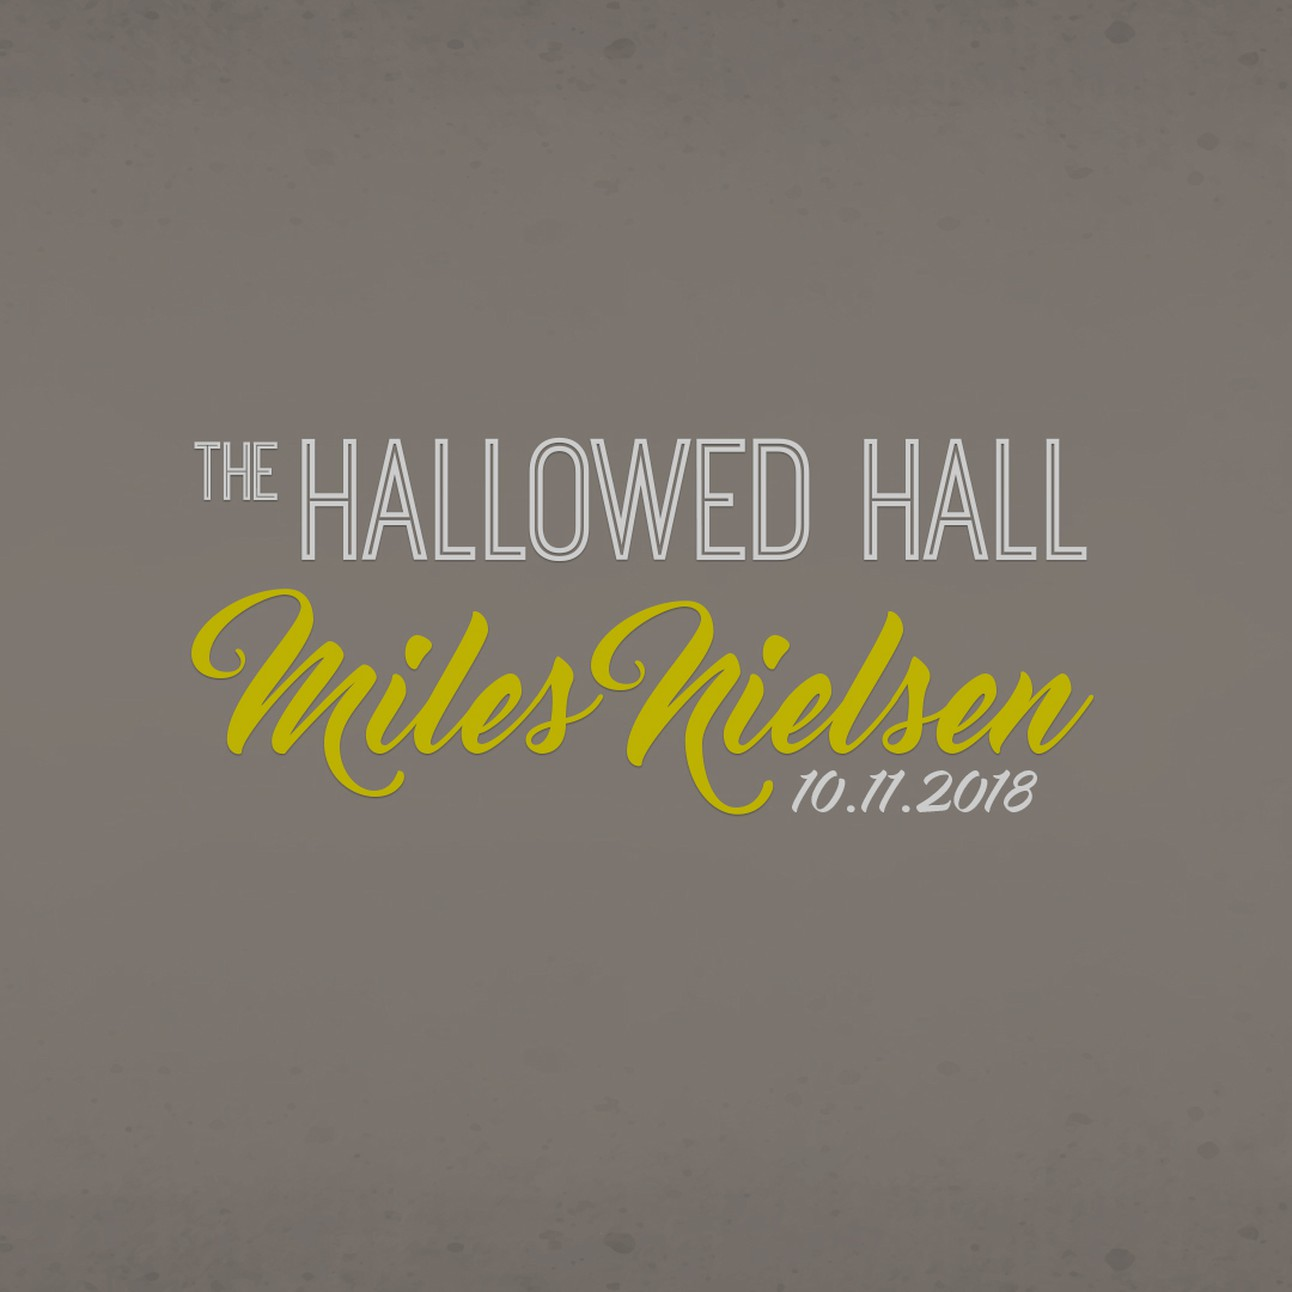 Introducing The Hallowed Hall!